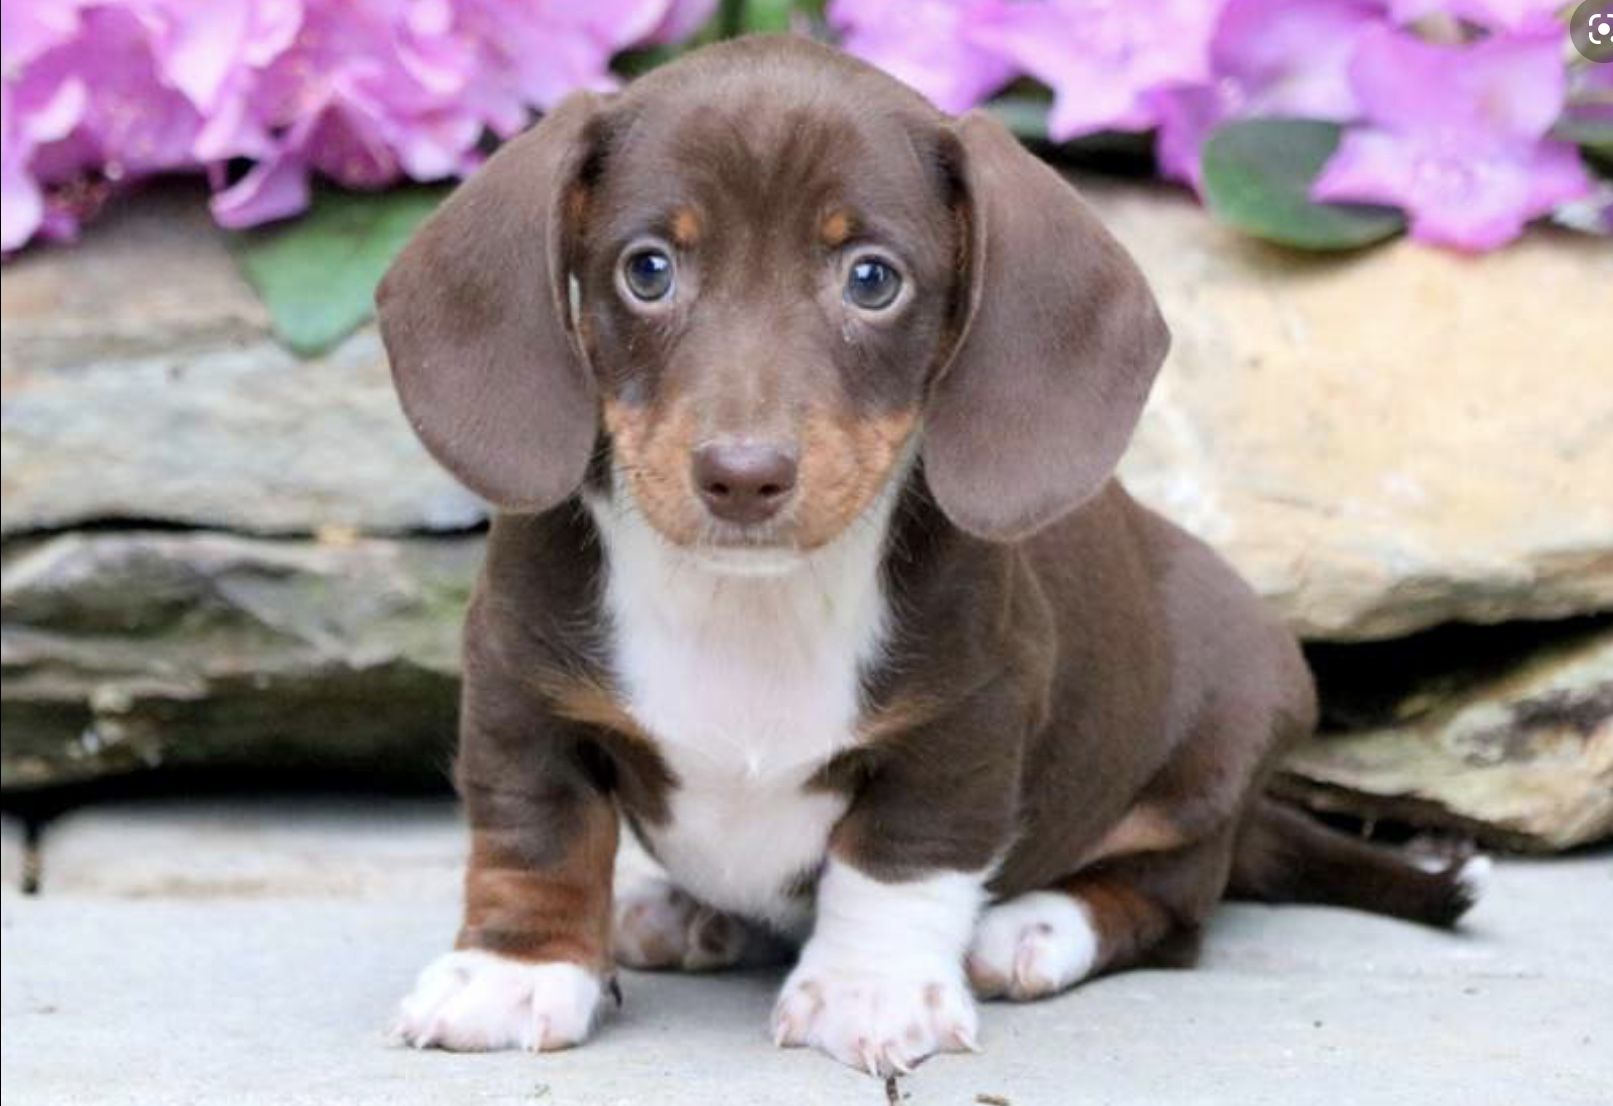 Pin By Phyllis Lammeman Finch On It S A Dachshund Thing In 2020 Dachshund Puppy Miniature Chiweenie Puppies Miniature Puppies